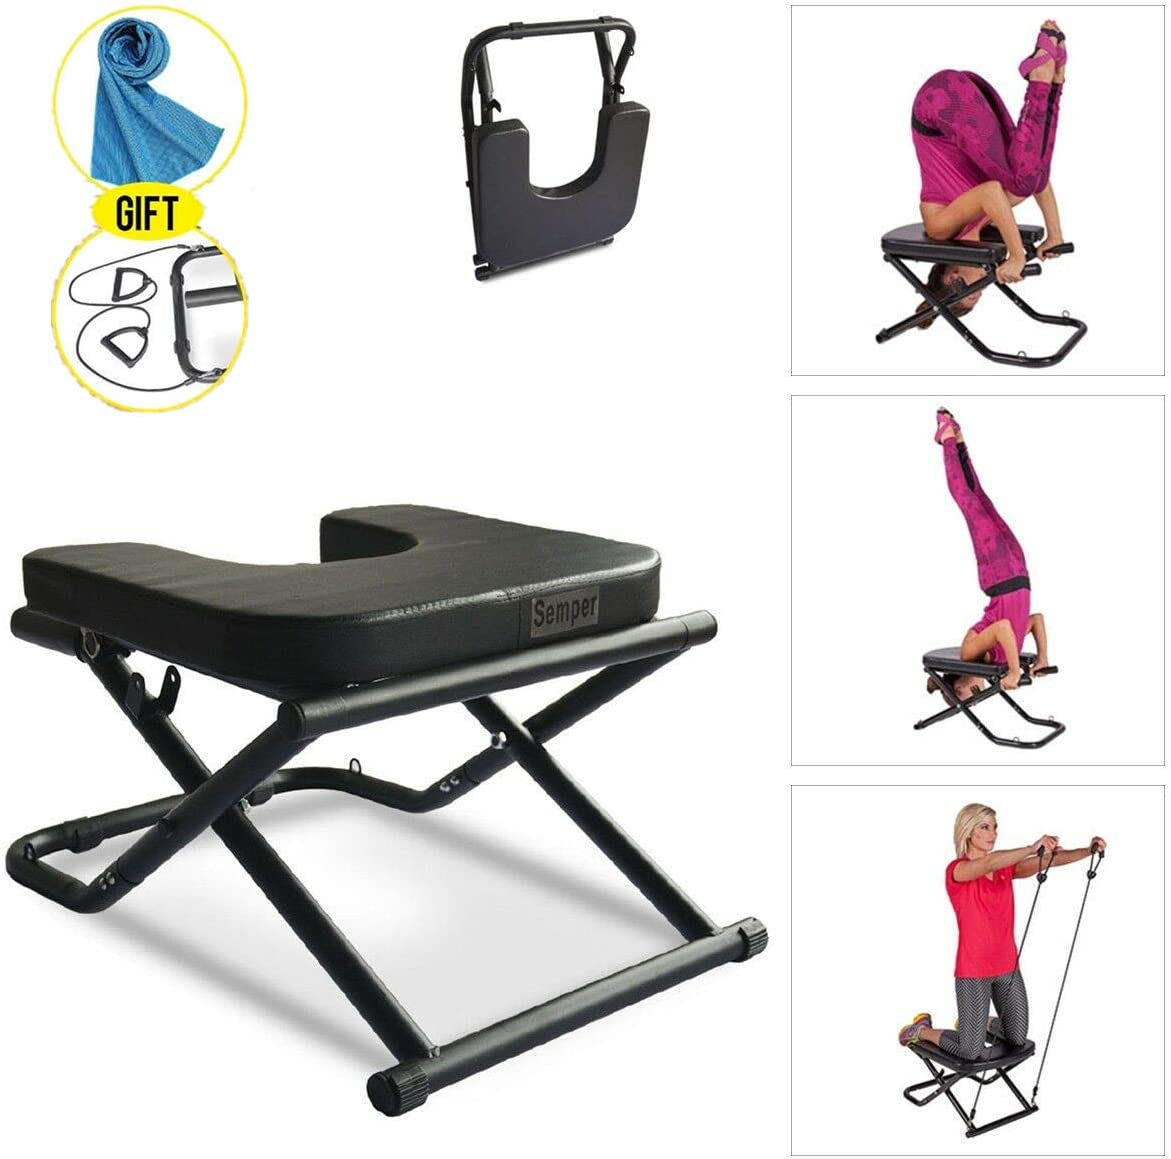 Apelila Yoga Chair Inversion Bench – Stand Yoga Chair Headstander for House, for Shoulderstand, Practice Head Stand, Headstand Bench w Bands and Cooling Towel